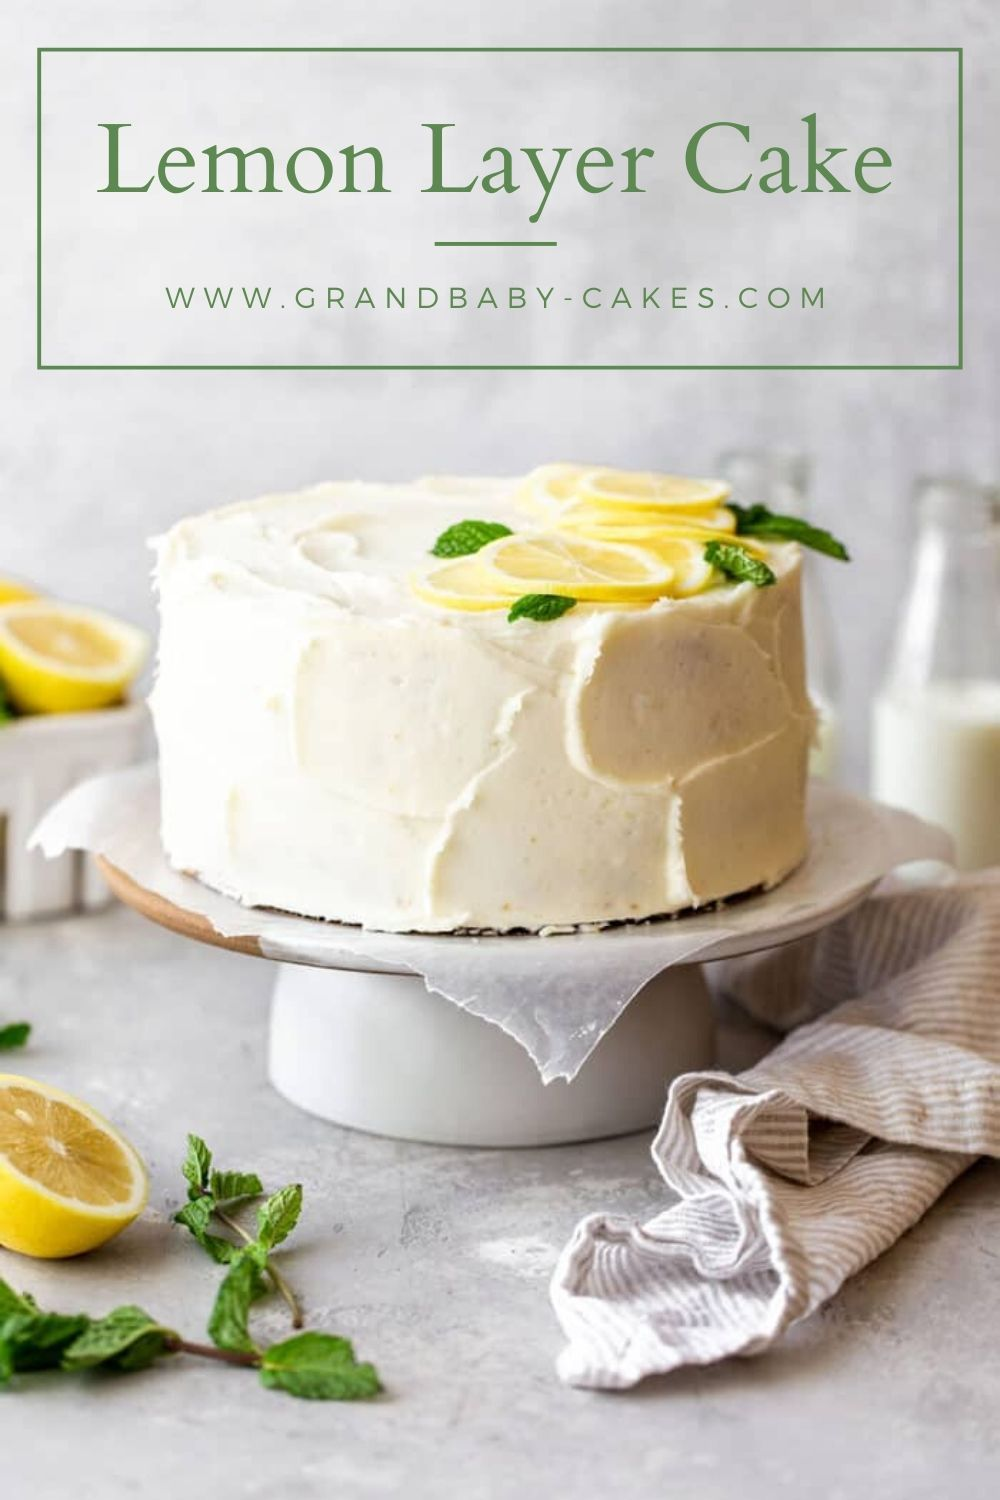 This perfectly moist, tender and soft lemon layer cake is iced in a wonderful lemon cream cheese frosting and bursting with irresistibly zingy and tangy lemon flavor!!! #lemoncake #cake #lemon #citrus #cakerecipe